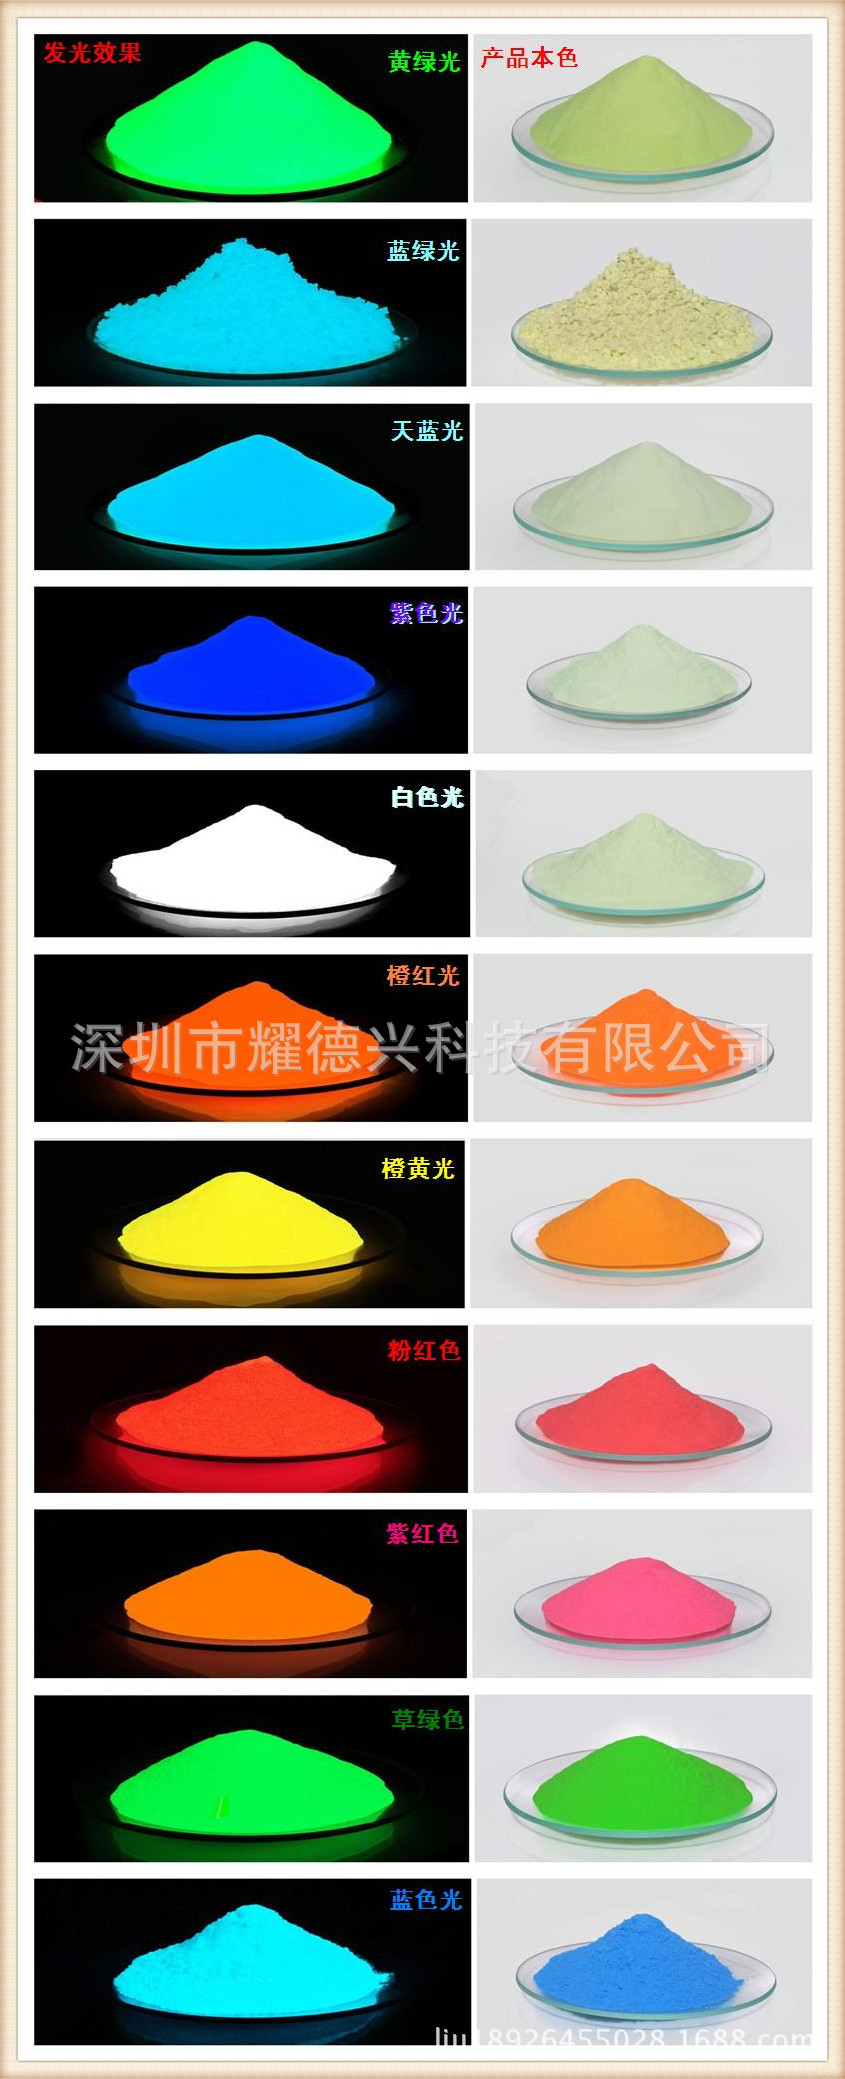 Nguyên liệu sả xuất giấy Color phosphors manufacturers wholesale Jianlou special luminous purple red